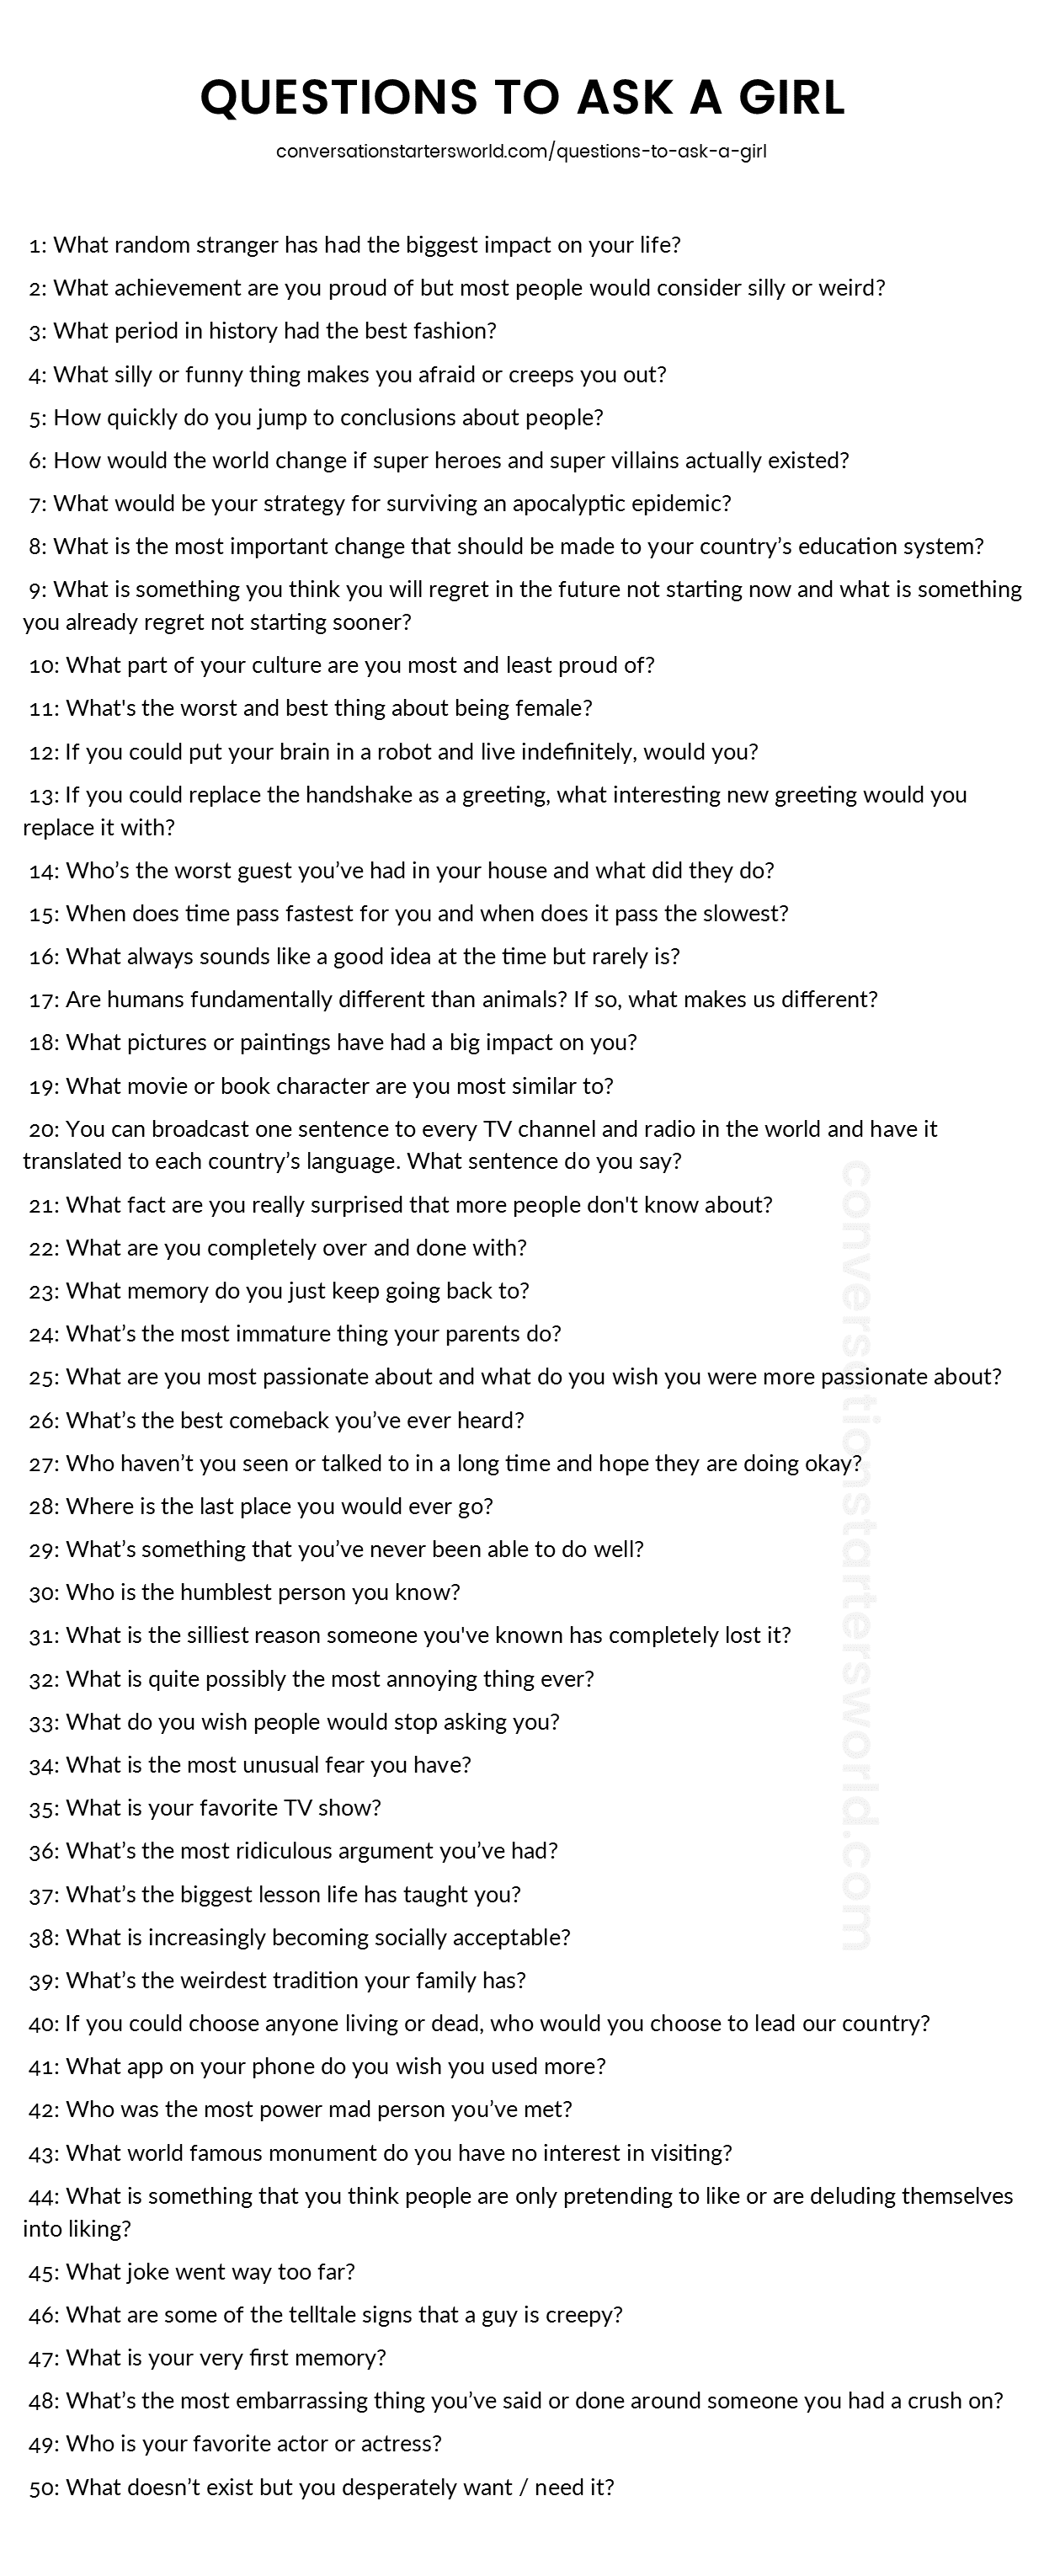 200 Questions to Ask a Girl - The only list you'll need